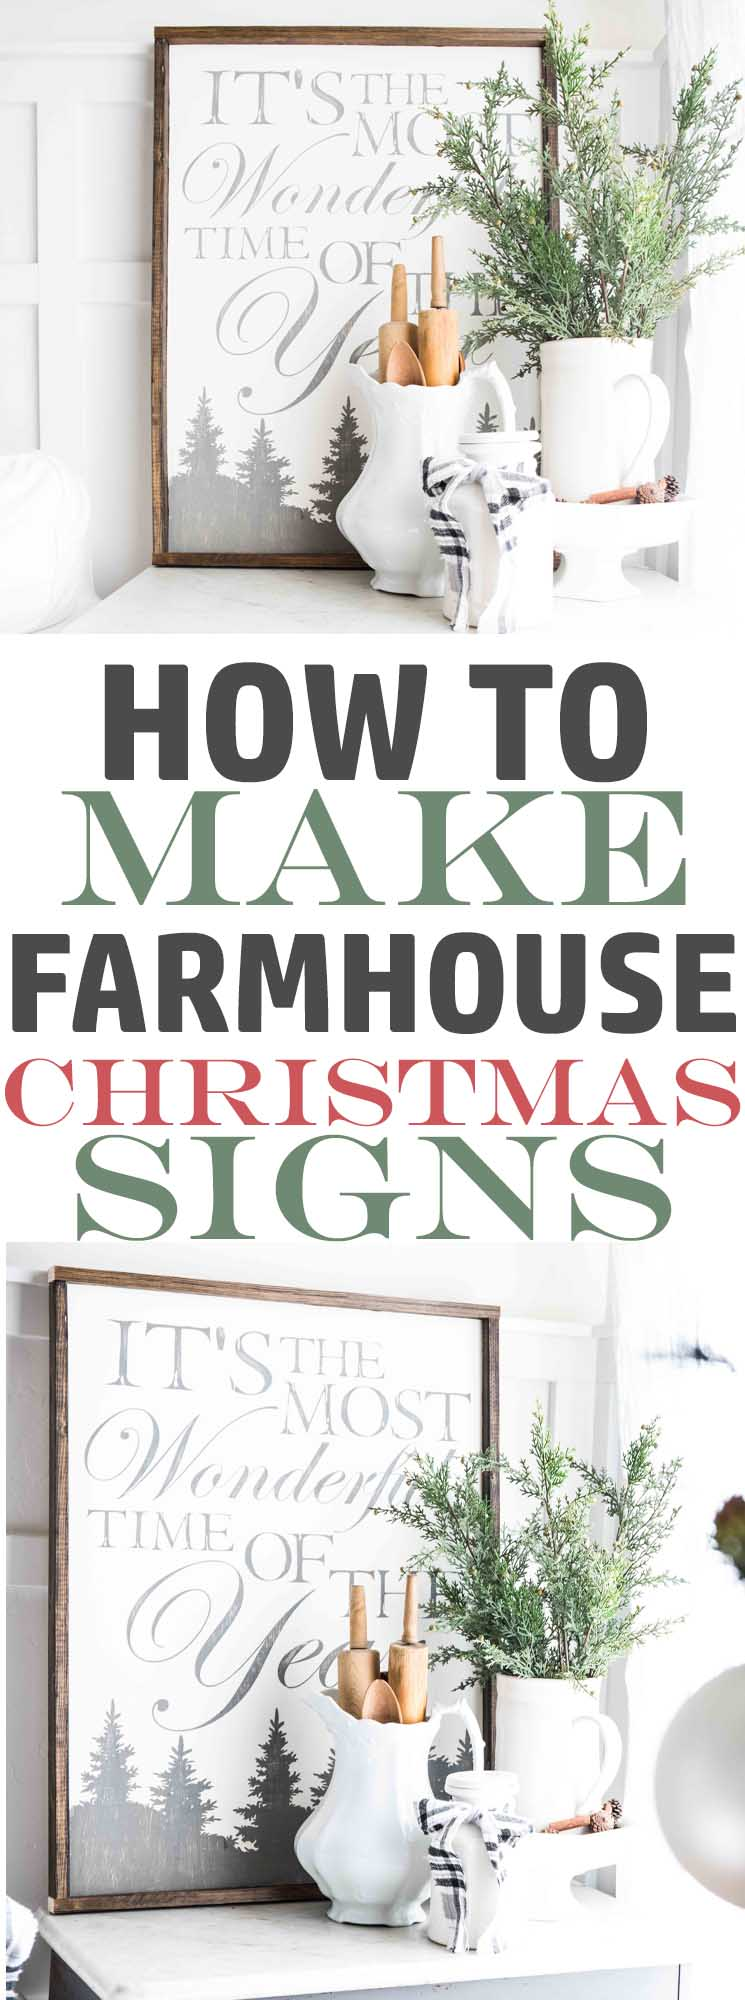 How To Make A Farmhouse Christmas Sign It S The Most Wonderful Time Of The Year The Mountain View Cottage